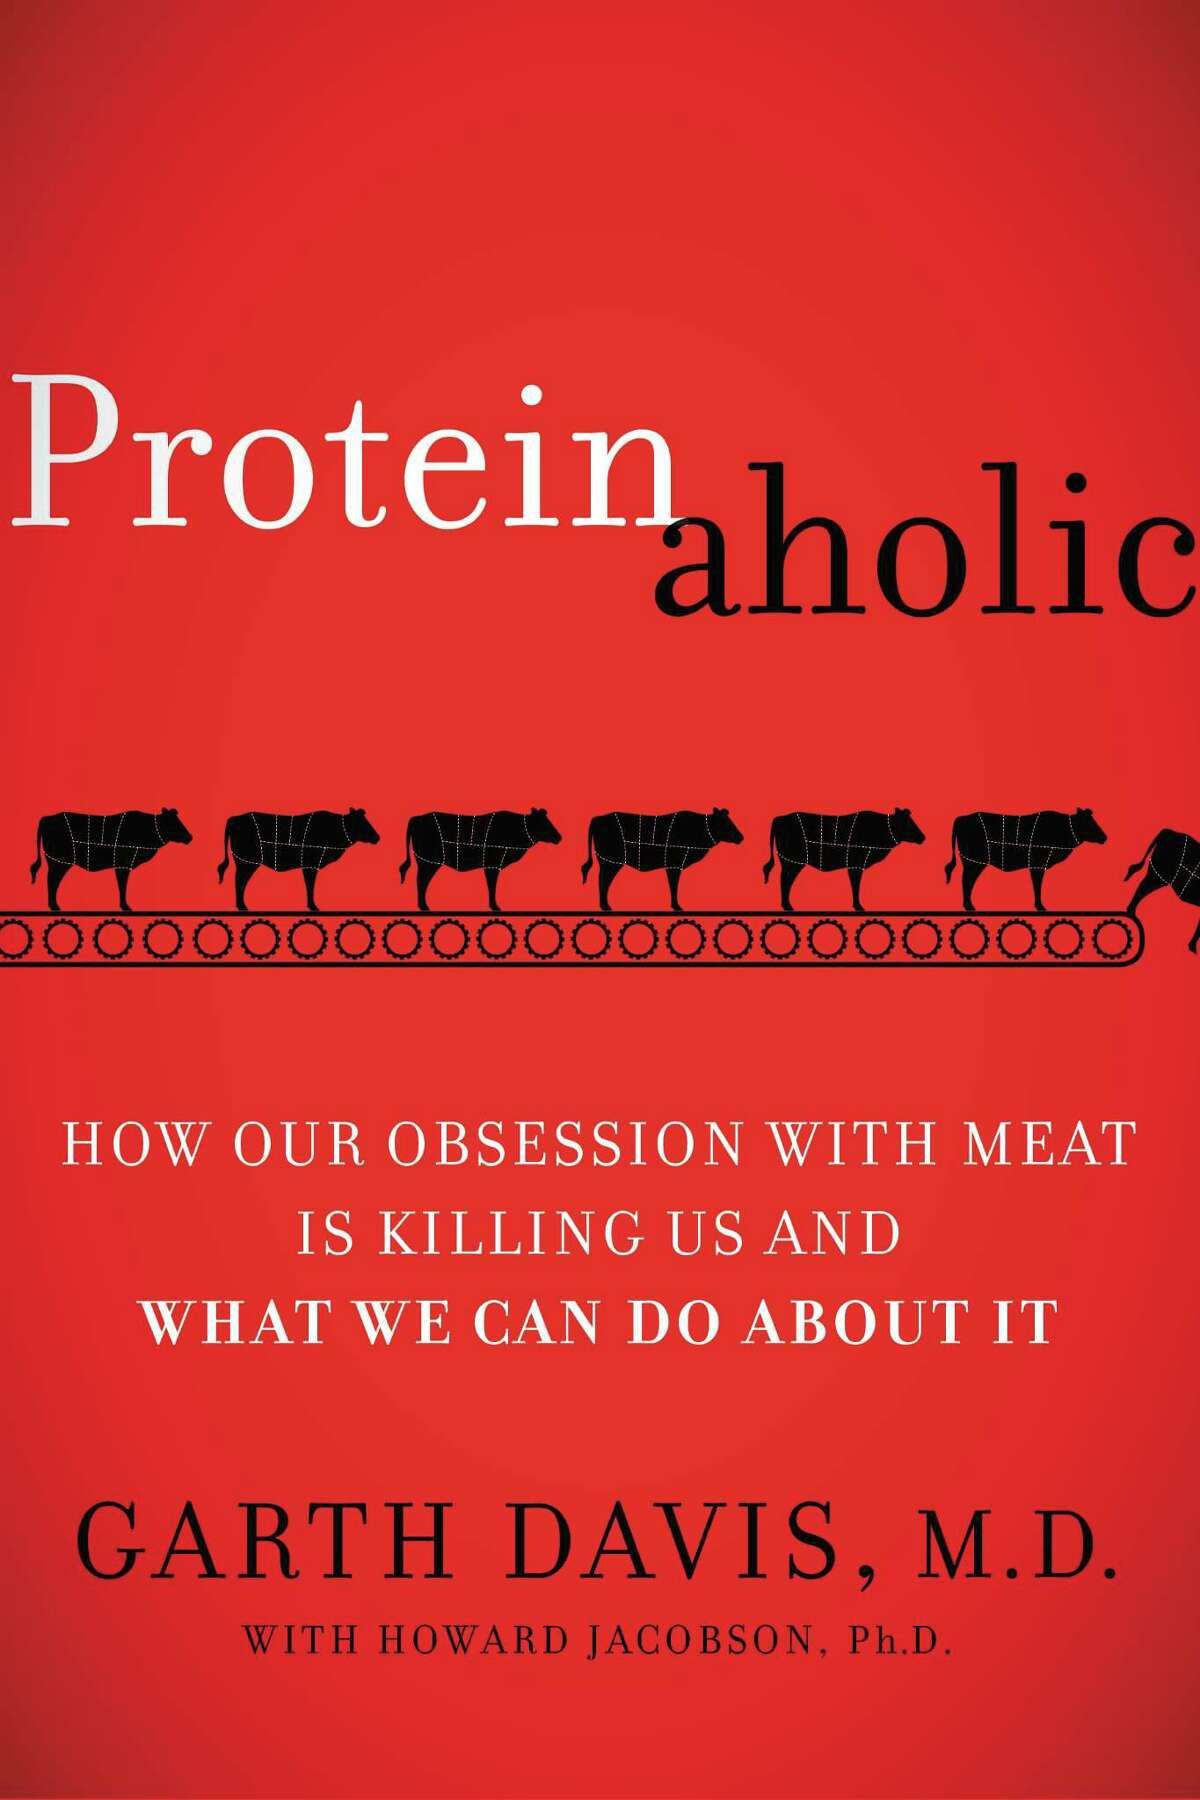 """Houston bariatric surgeon Dr. Garth Davis is the author of """"Proteinaholic: How Our Obsession With Meat is Killing Us and What We Can Do About It"""" (HarperOne; October 6, 2015)"""